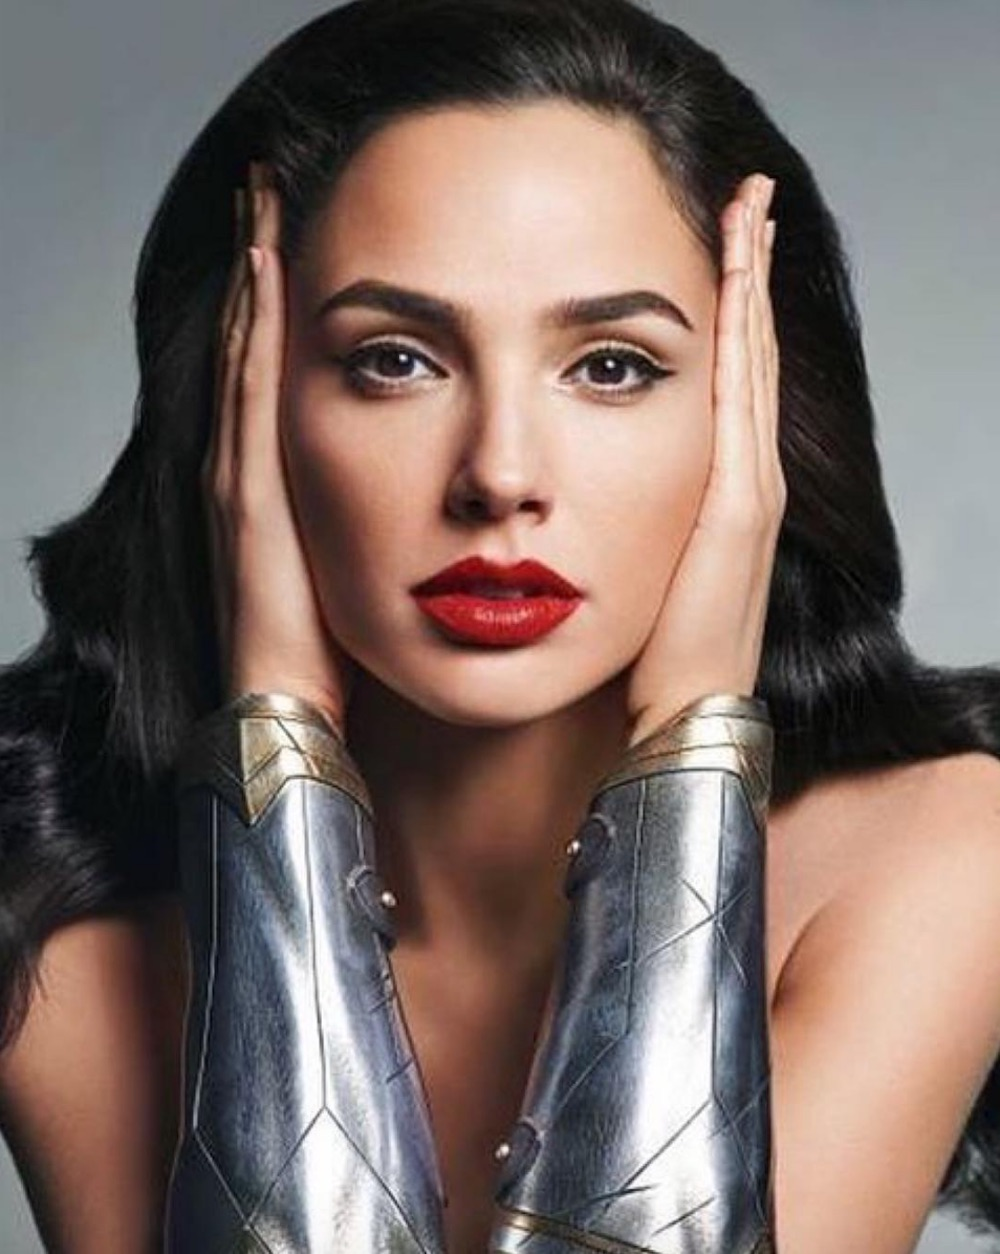 From Amazon to glamazon: Gal Gadot's makeup artist shared the secret to Wonder Woman's beauty looks